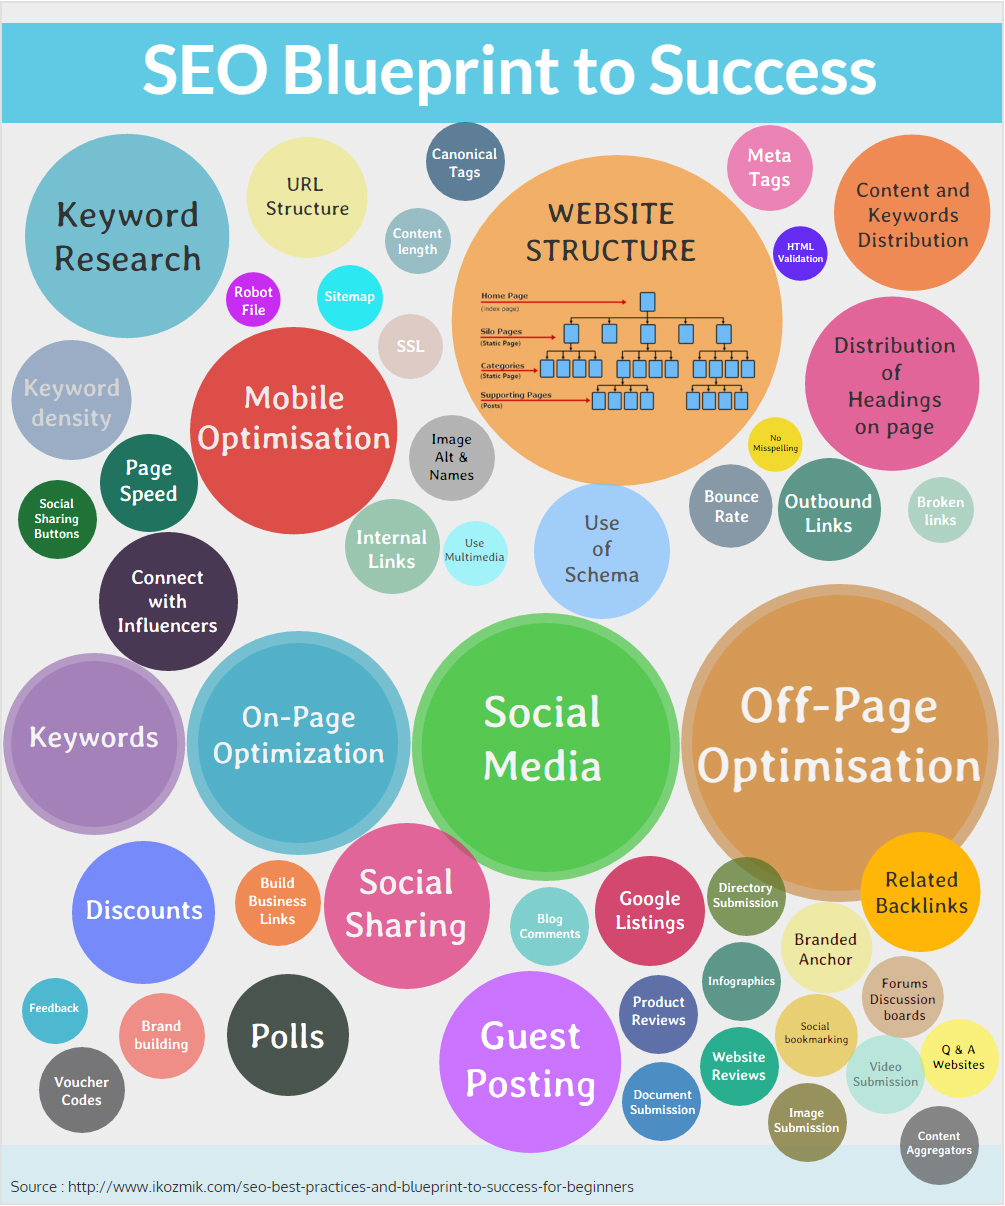 SEO best practices and blueprint to success for beginners